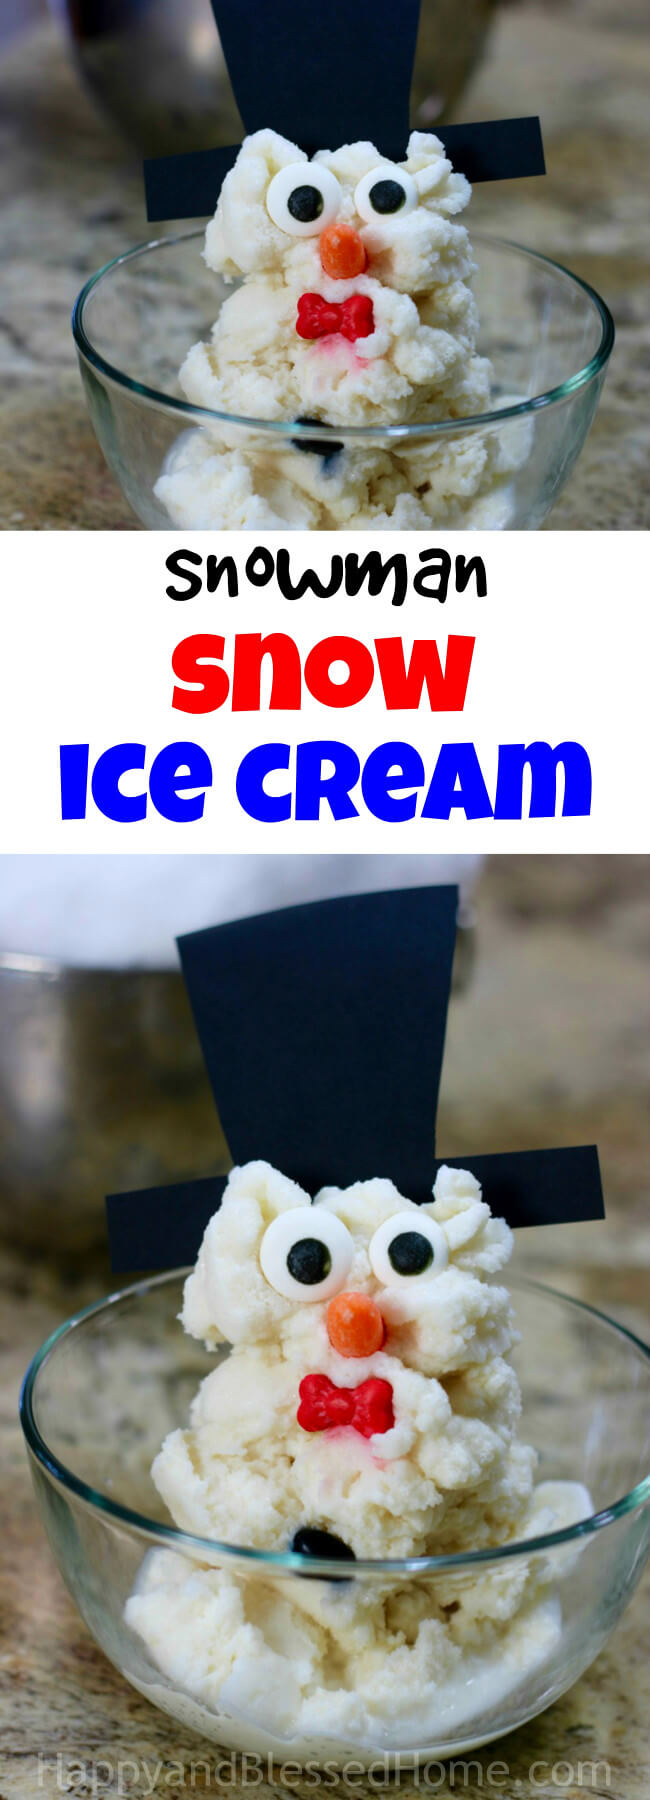 An adorable sweet treat for kids - Snowman Snow Ice Cream Recipe with ingredients and directions